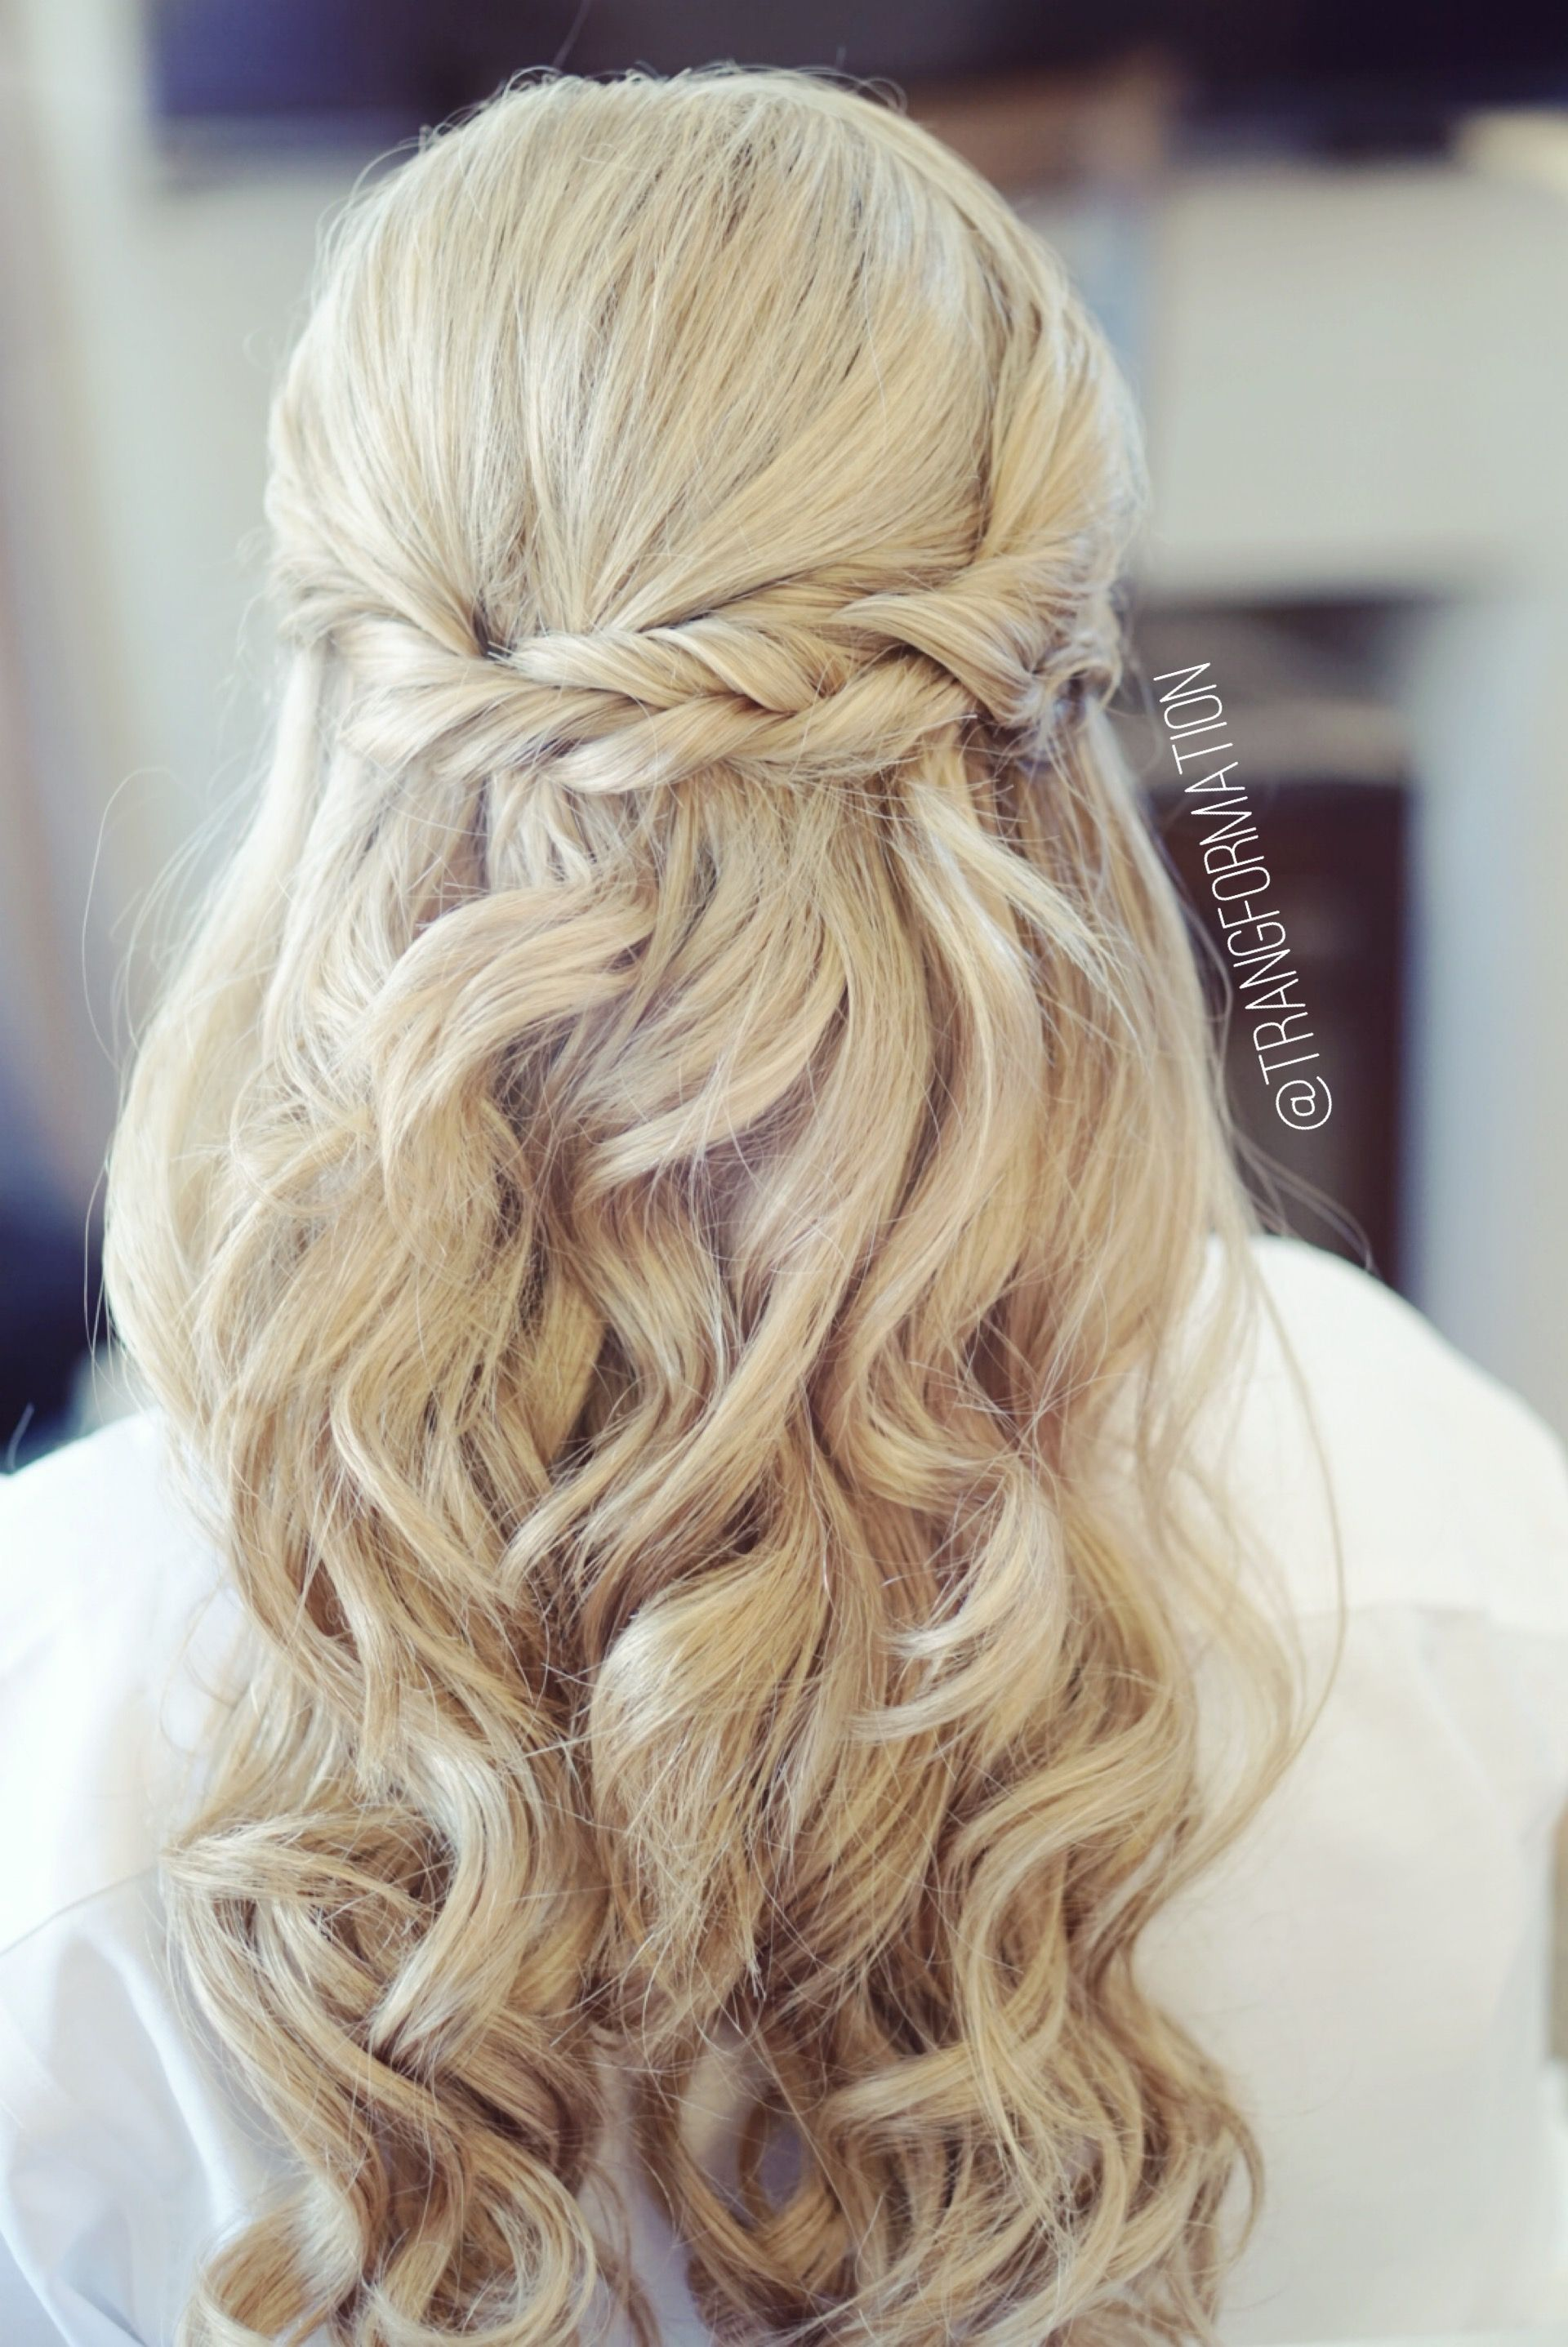 Half Updos 25 Chic Bridesmaid Hairstyles For Long Hair Bridal Hair Half Up Hair Styles Bridal Hair Half Up Half Down